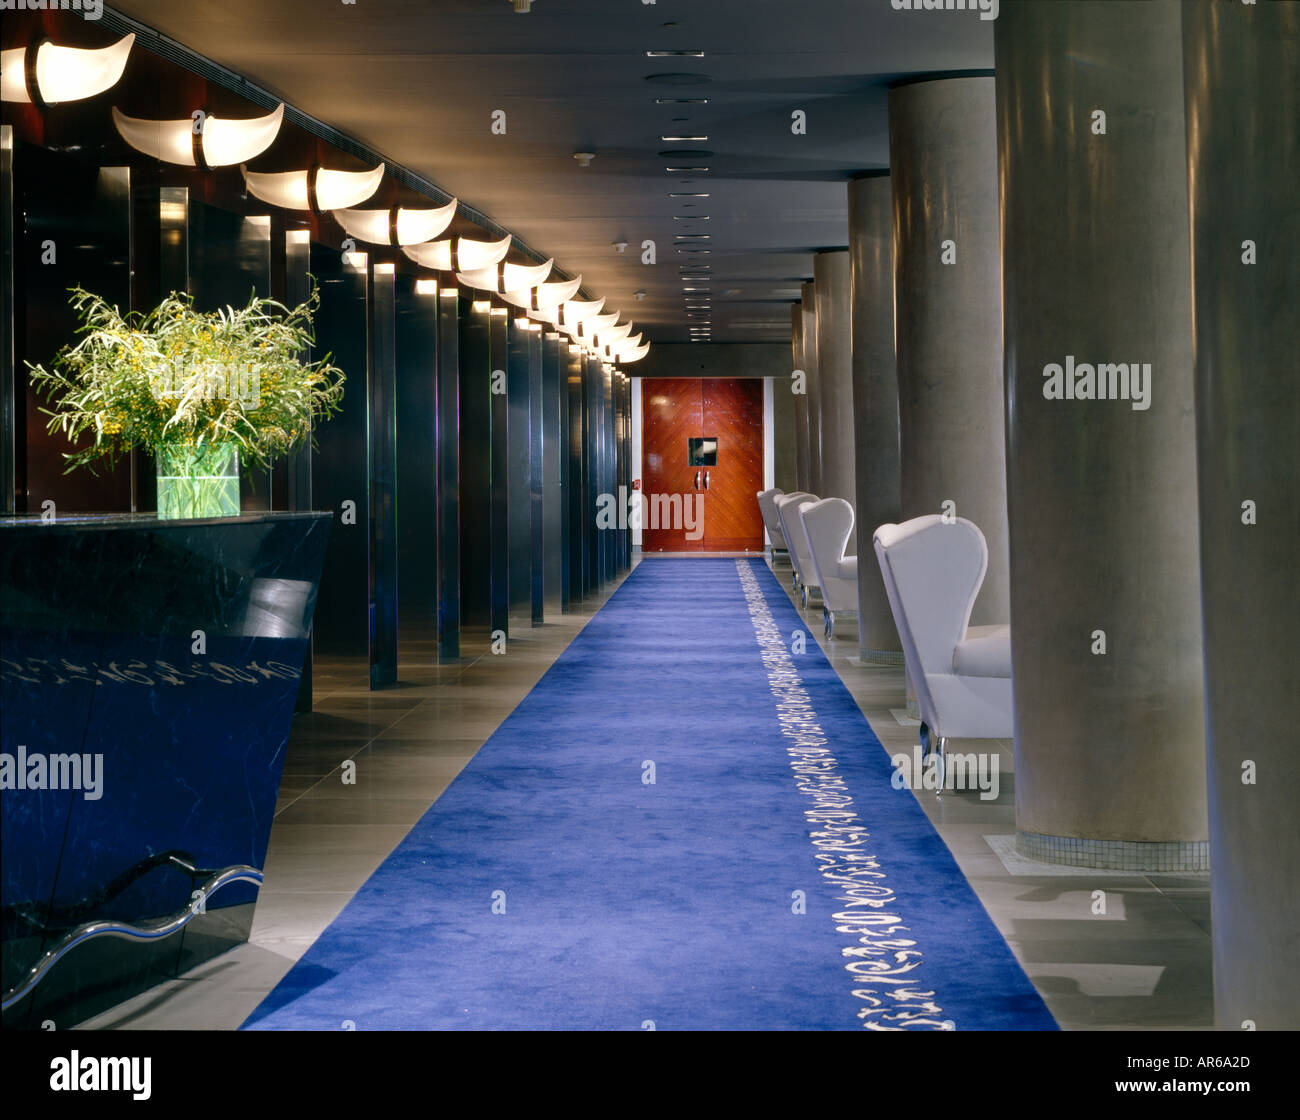 the royalton hotel new york 1988 2007 architect philippe starck stock photo royalty free. Black Bedroom Furniture Sets. Home Design Ideas